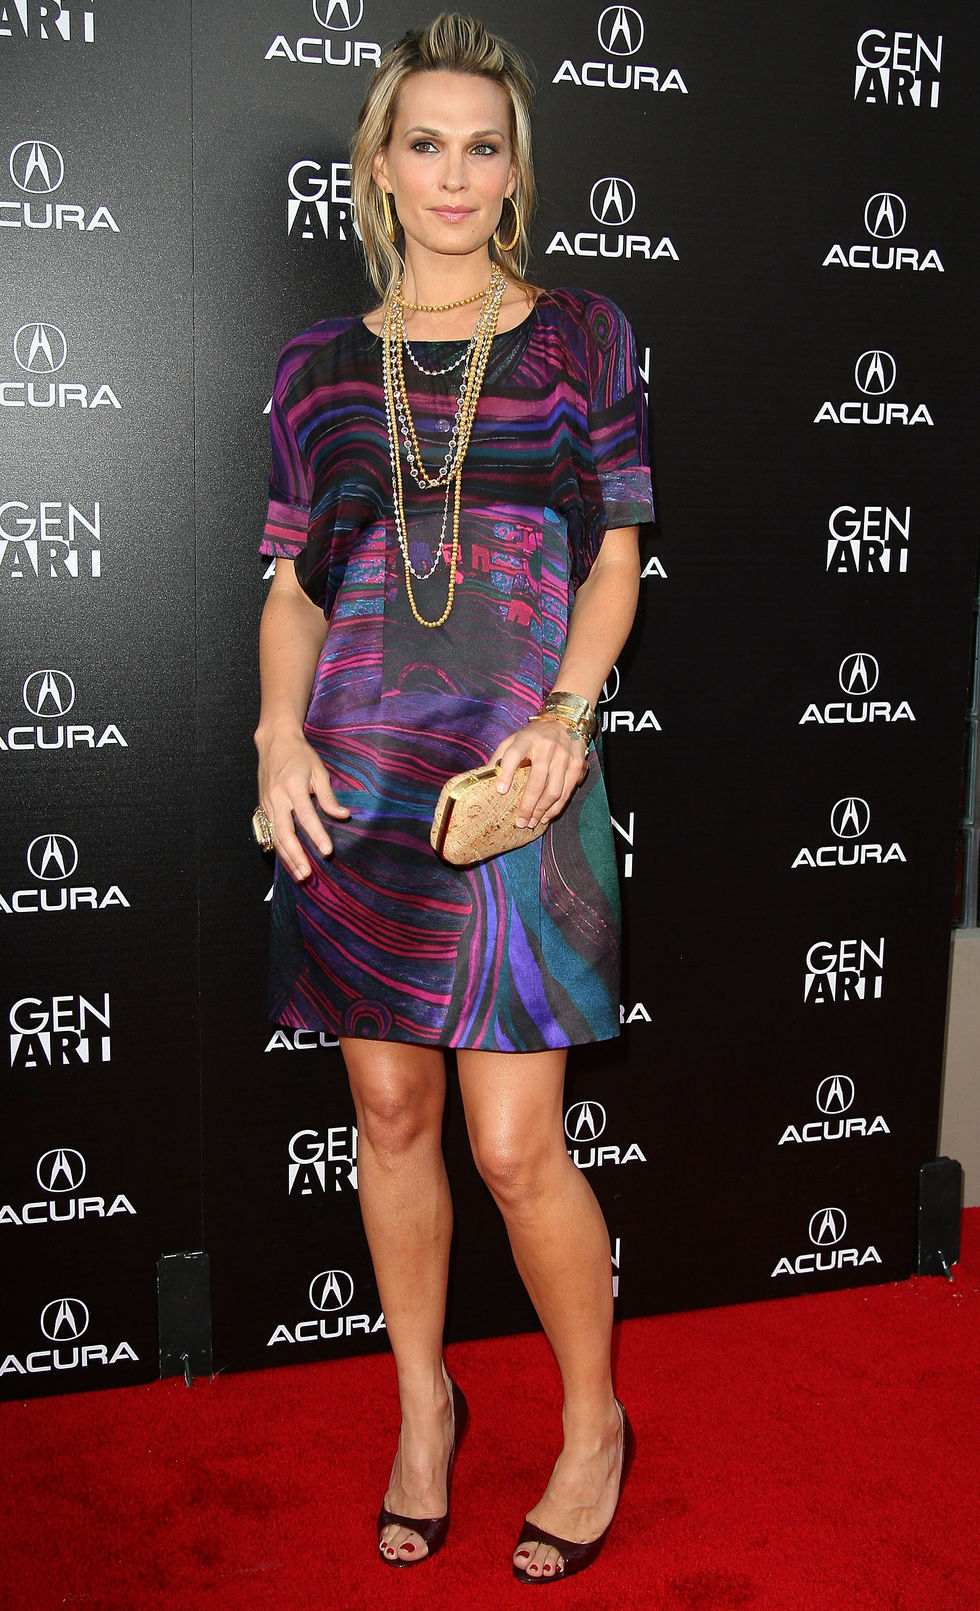 molly-sims-capture-the-night-photography-exhibition-in-los-angeles-07